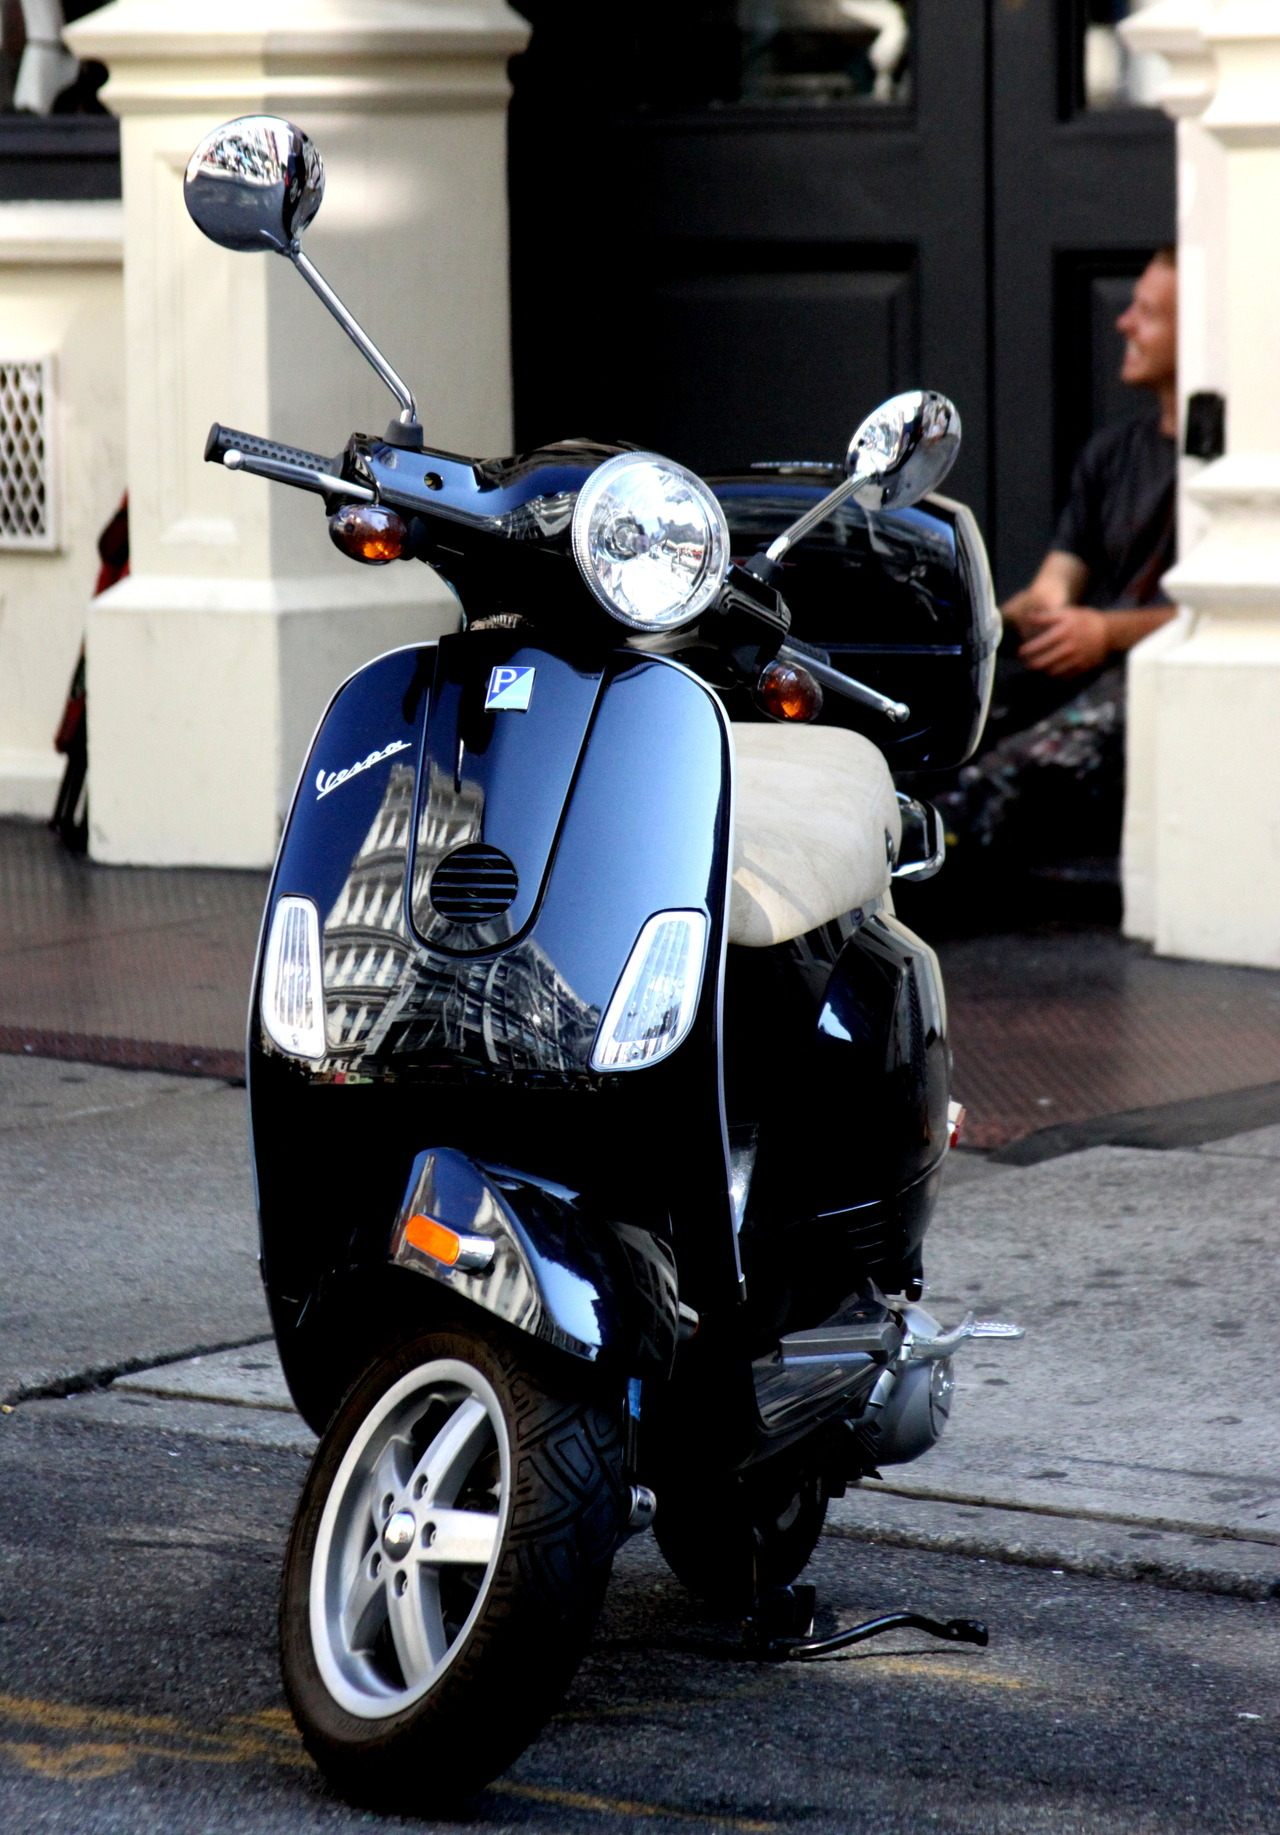 Vespa by by Julia Rozental for Motor Inn